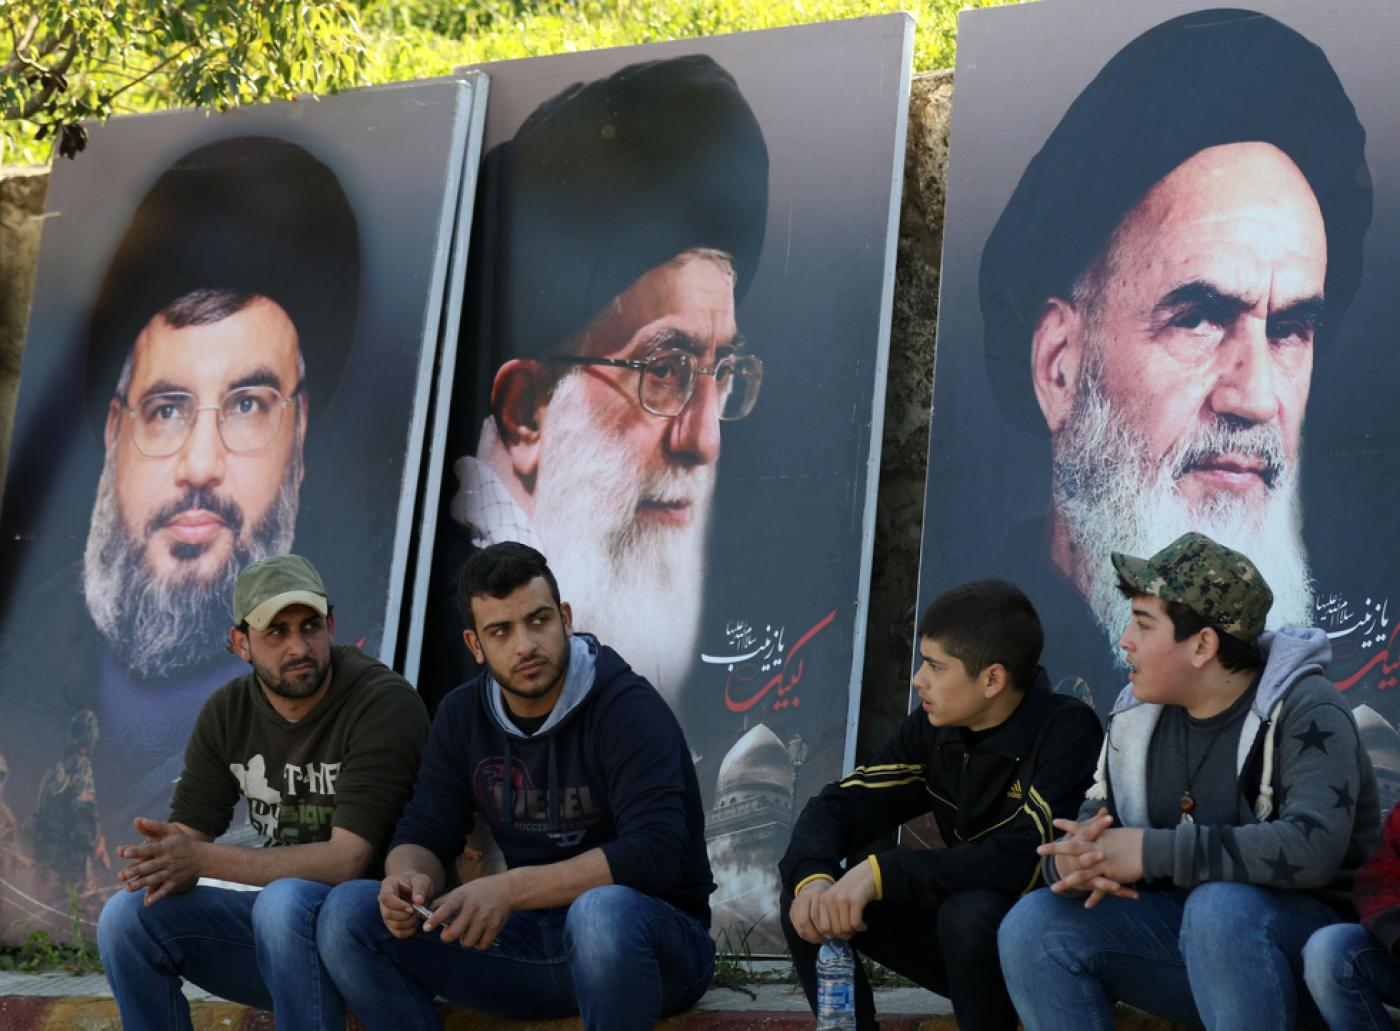 ANALYSIS: GCC listing Hezbollah as terrorist a 'harsh blow' for